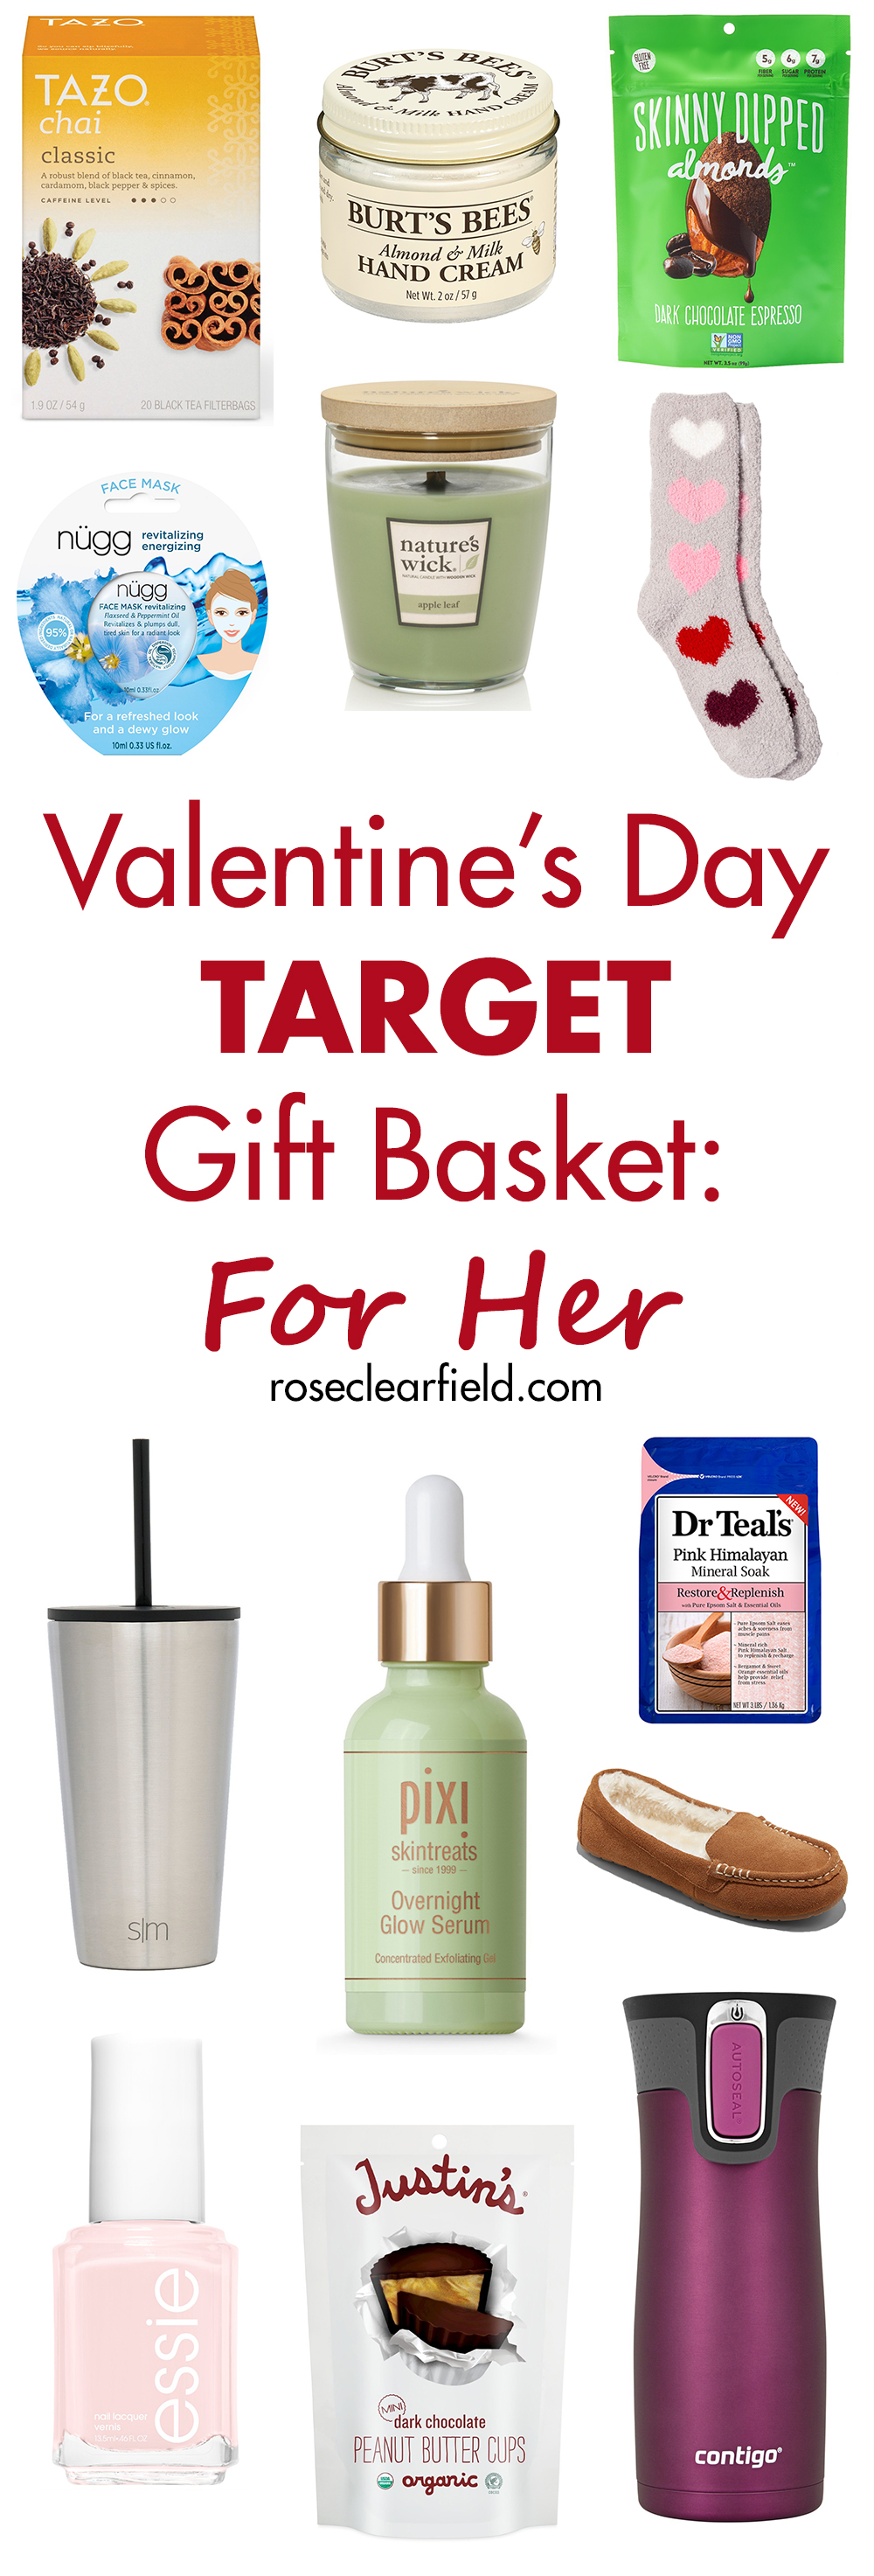 Valentine's Day Target Gift Basket: For Her | https://www.roseclearfield.com